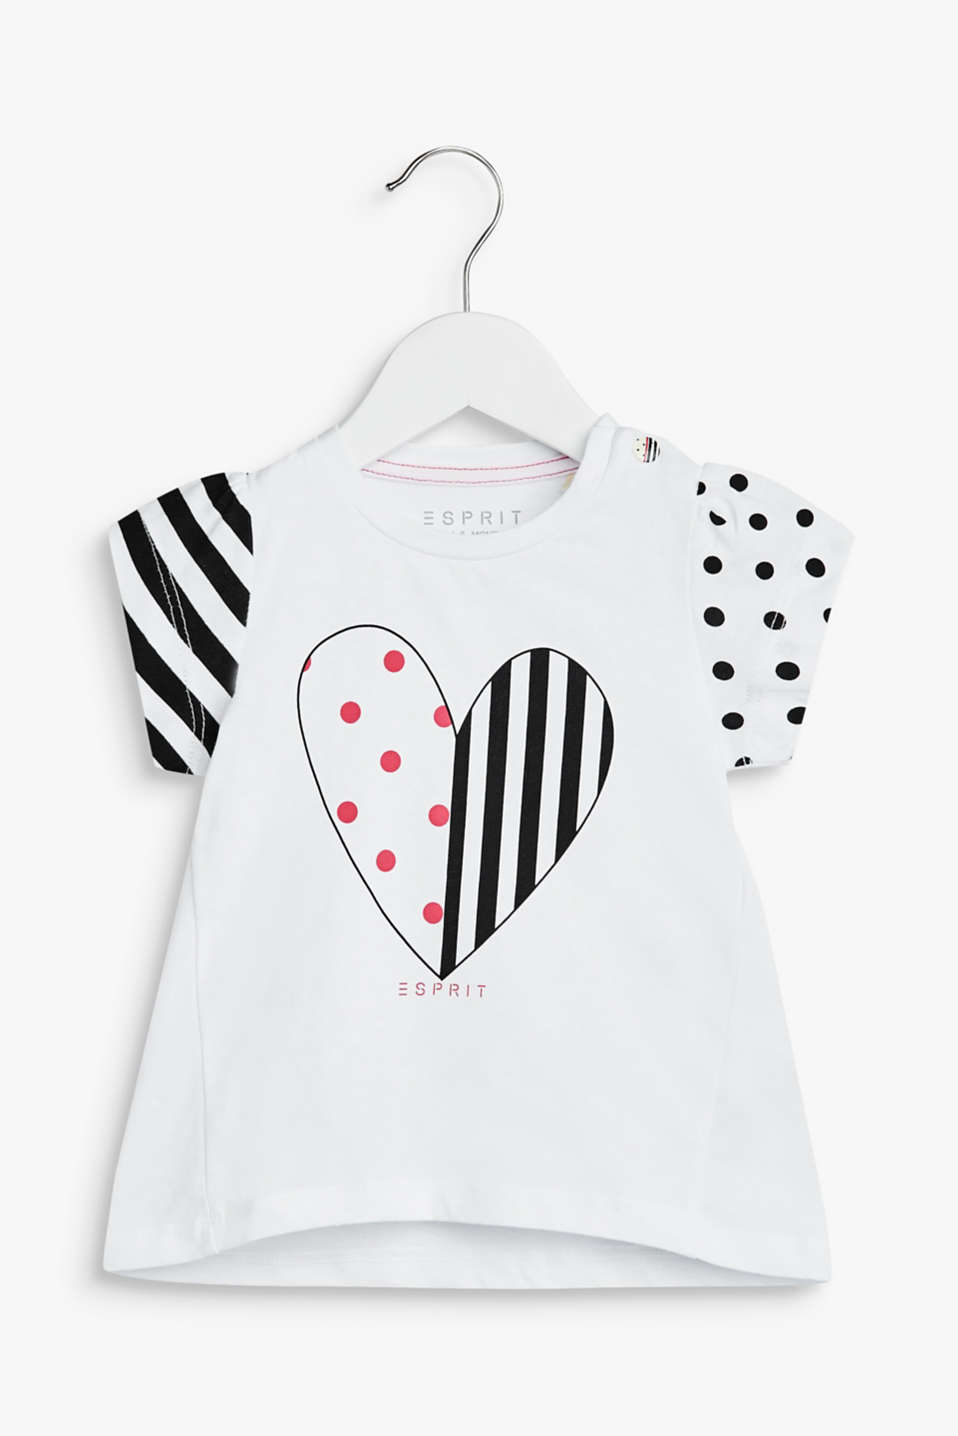 Esprit - T-shirt with a heart print, 100% cotton